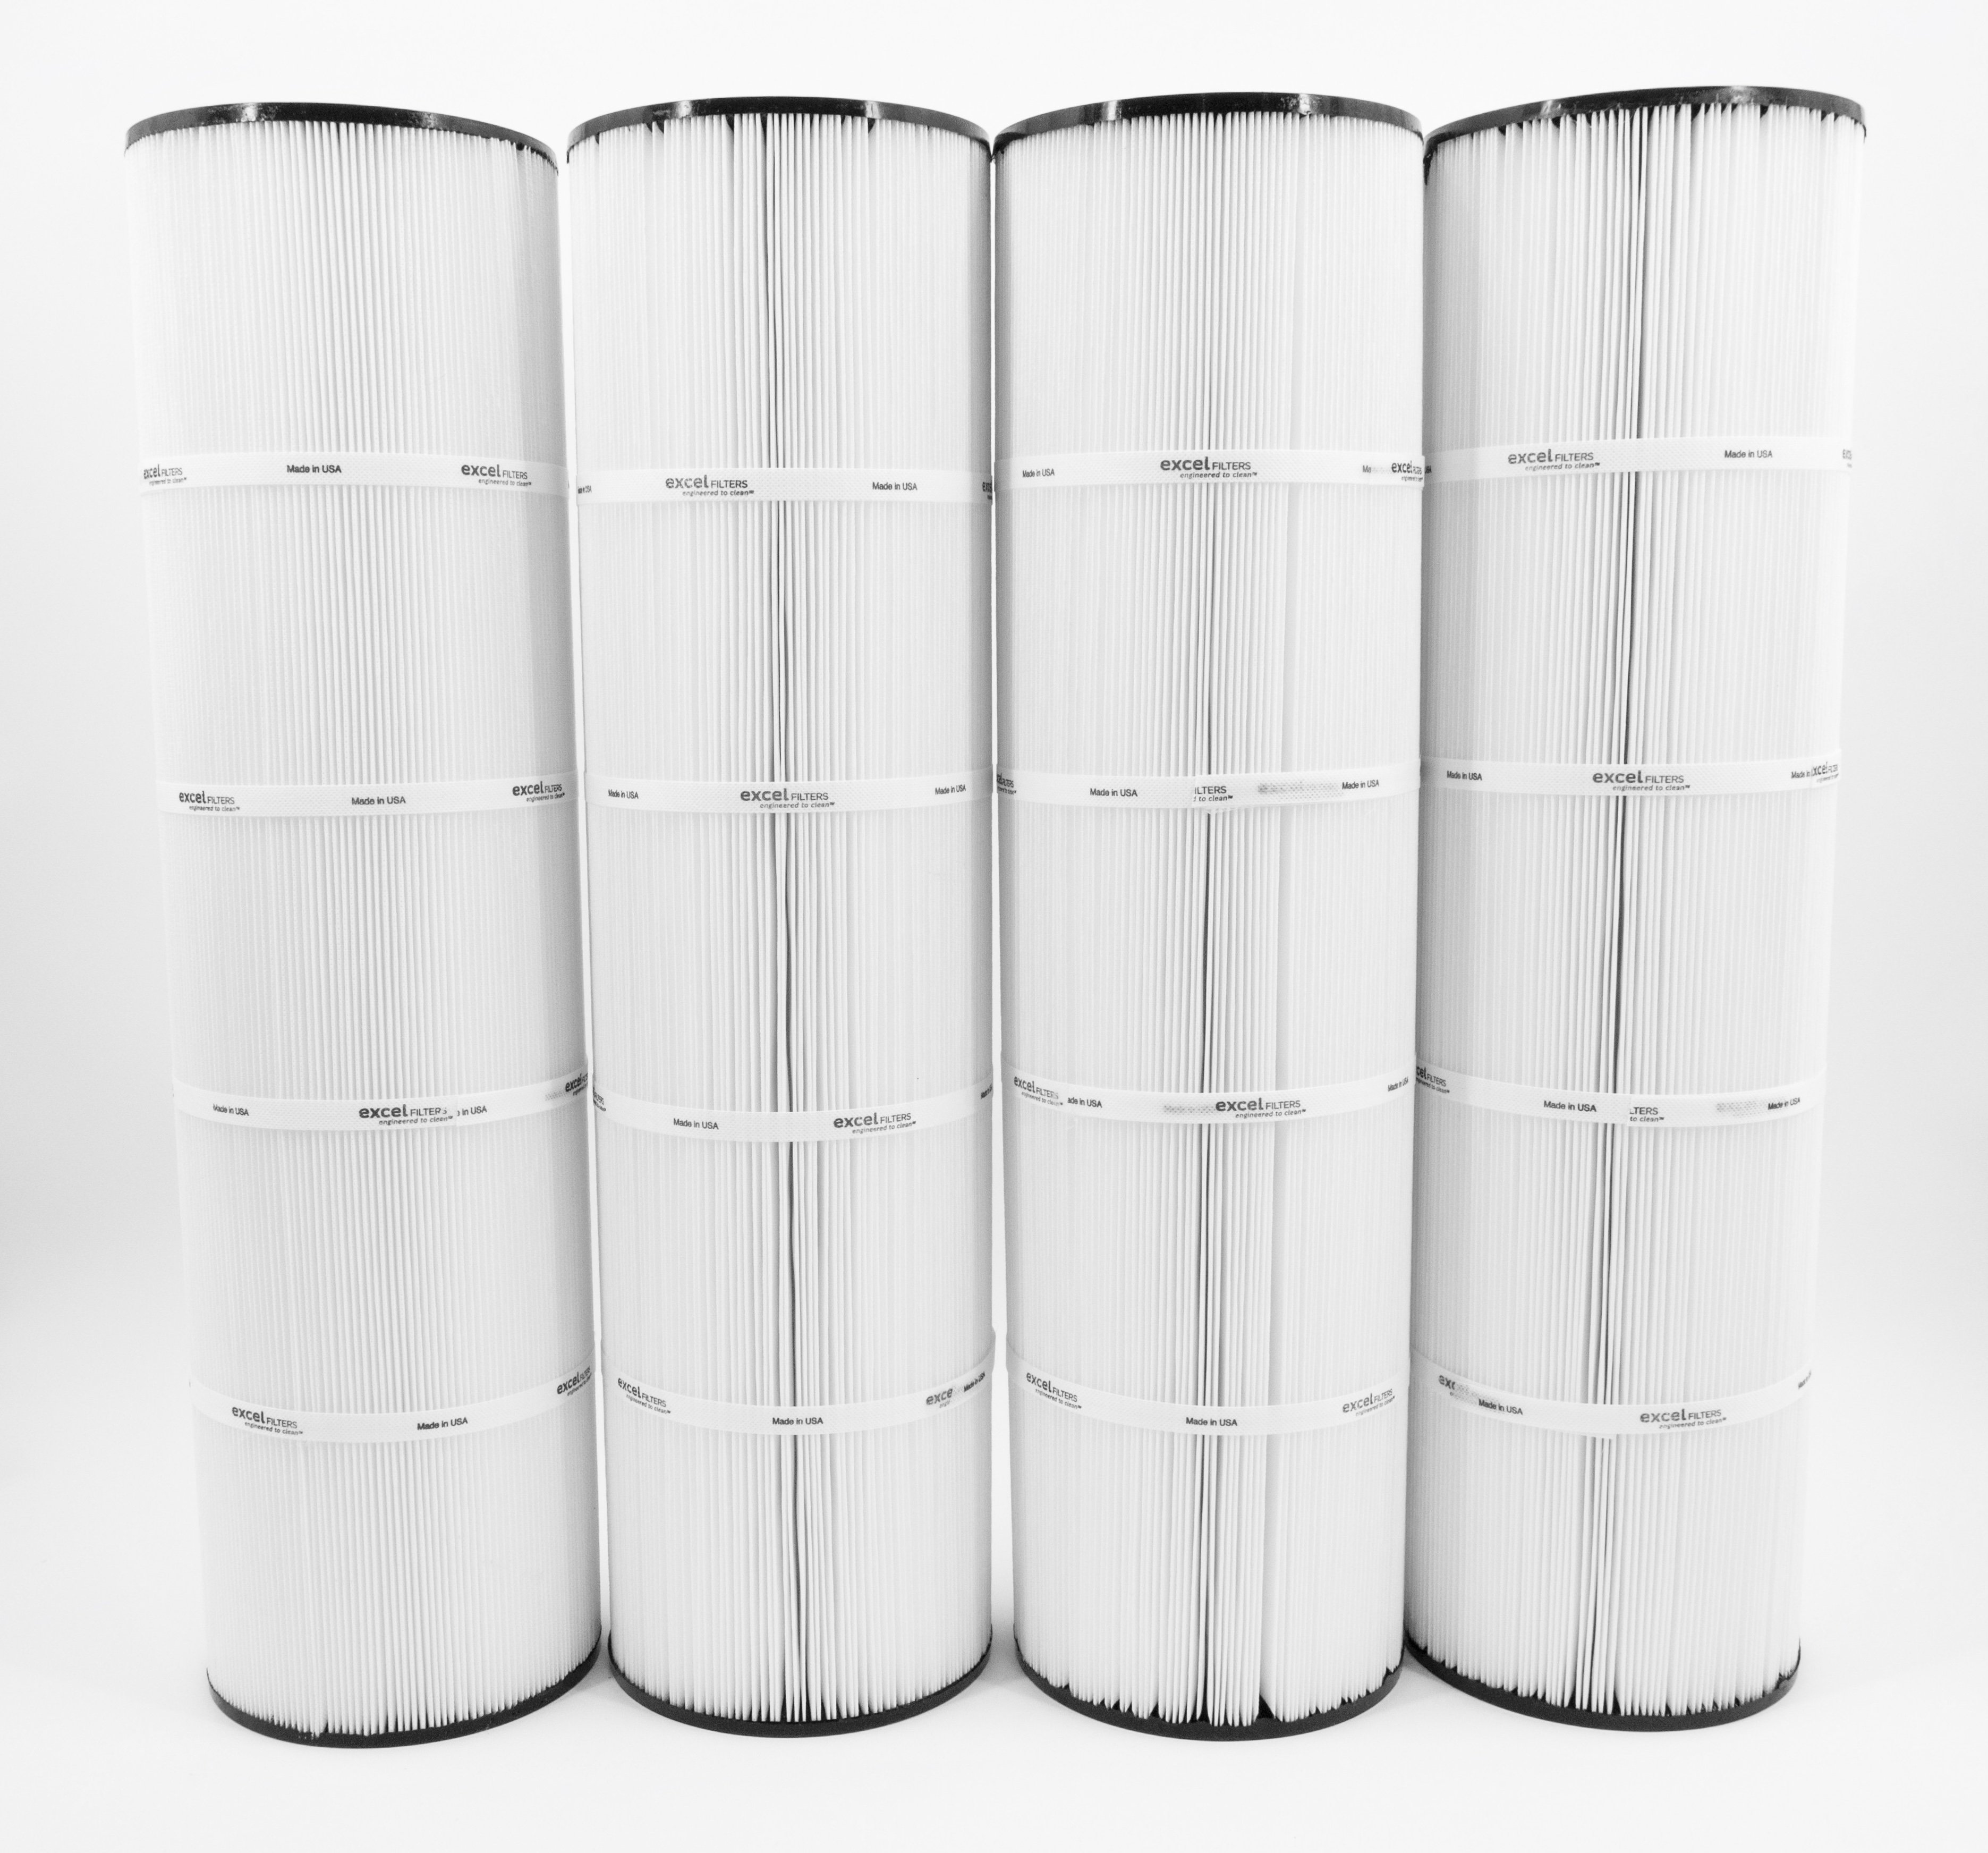 Jacuzzi Triclops Pool Filter Cartridge 65 Best Products Images In 2019 Filters Sundance Spas